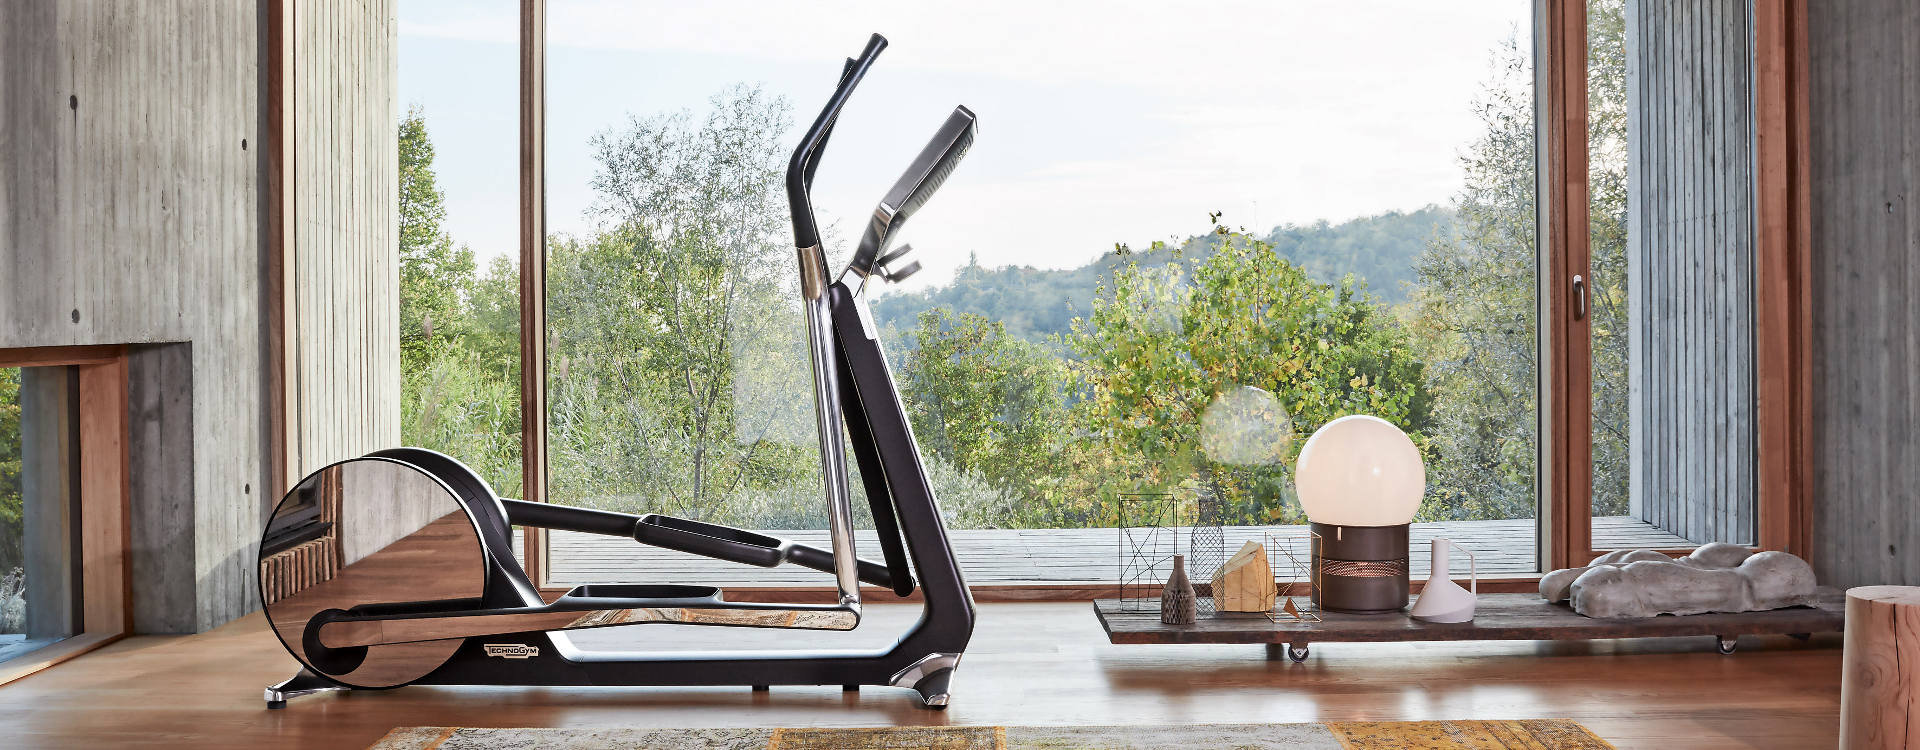 Technogym Interior Design helps you design your own gym at home or